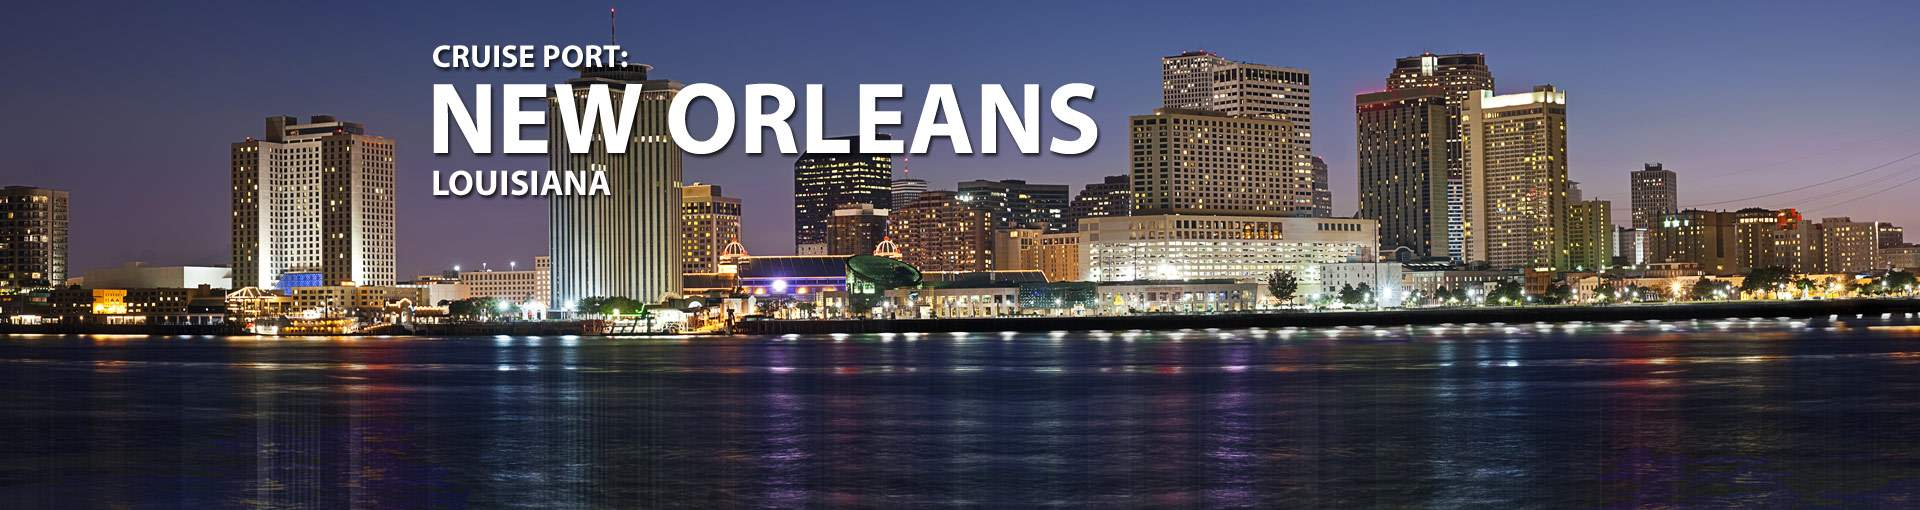 New Orleans Louisiana Cruise Port 2018 And 2019 Cruises